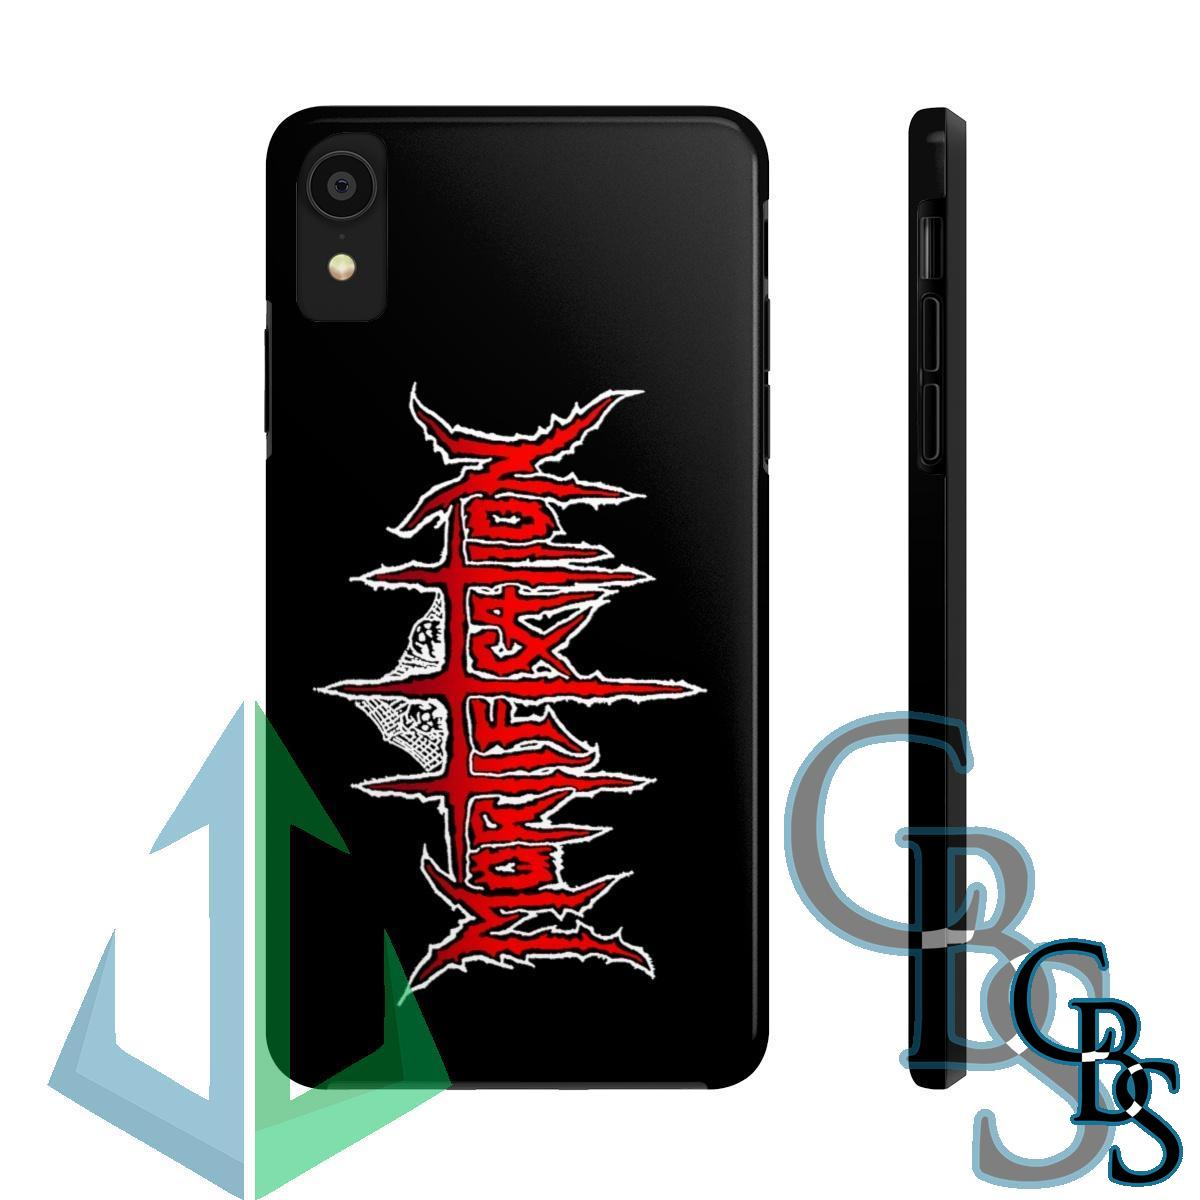 Mortification Red Logo iPhone Cases (iPhone 7/7 Plus, iPhone 8/8 Plus, iPhone X, XS, XR, iPhone 11, 11 Pro, 11 Pro Max)